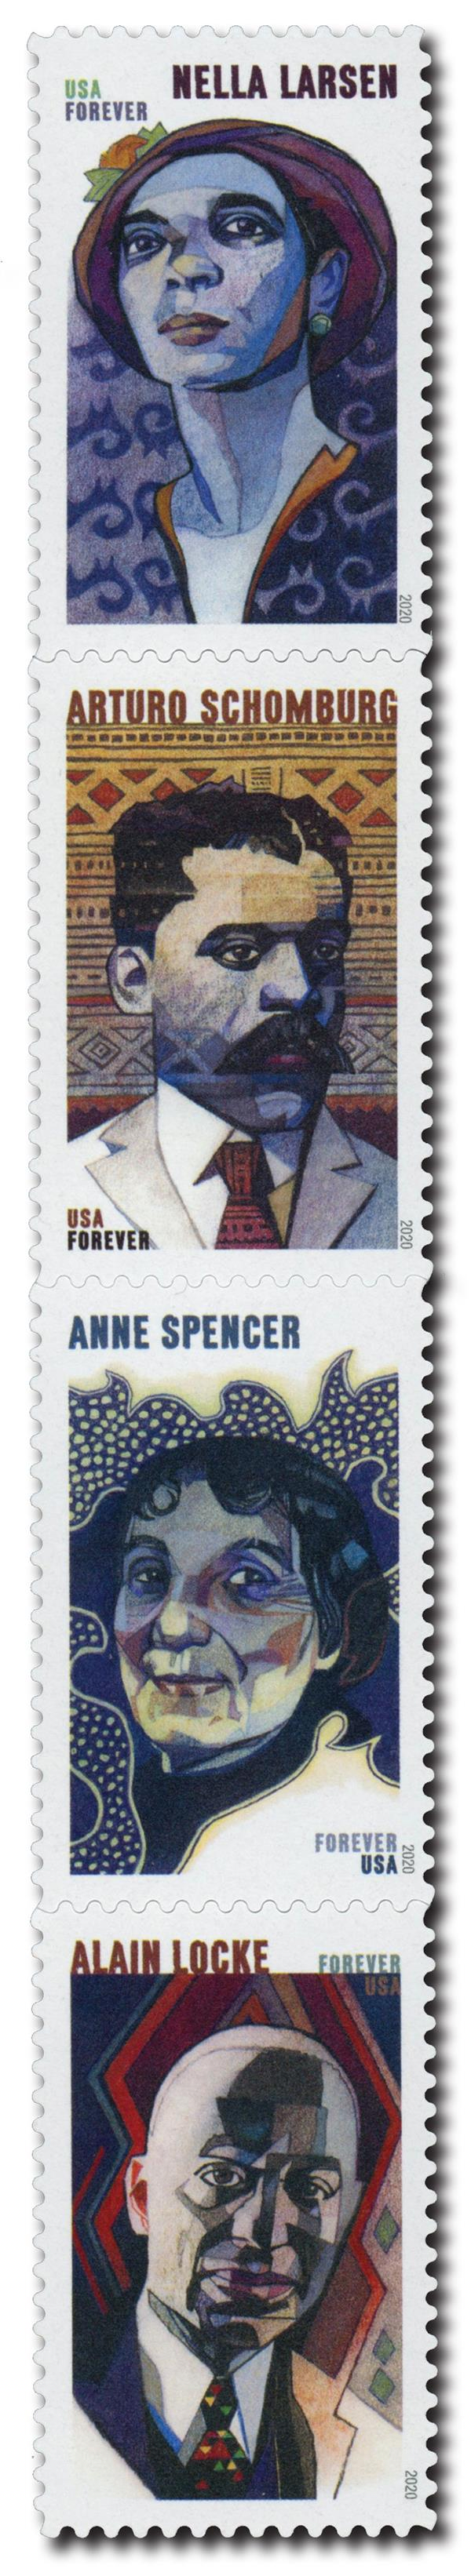 2020 First-Class Forever Stamps - Voices of Harlem